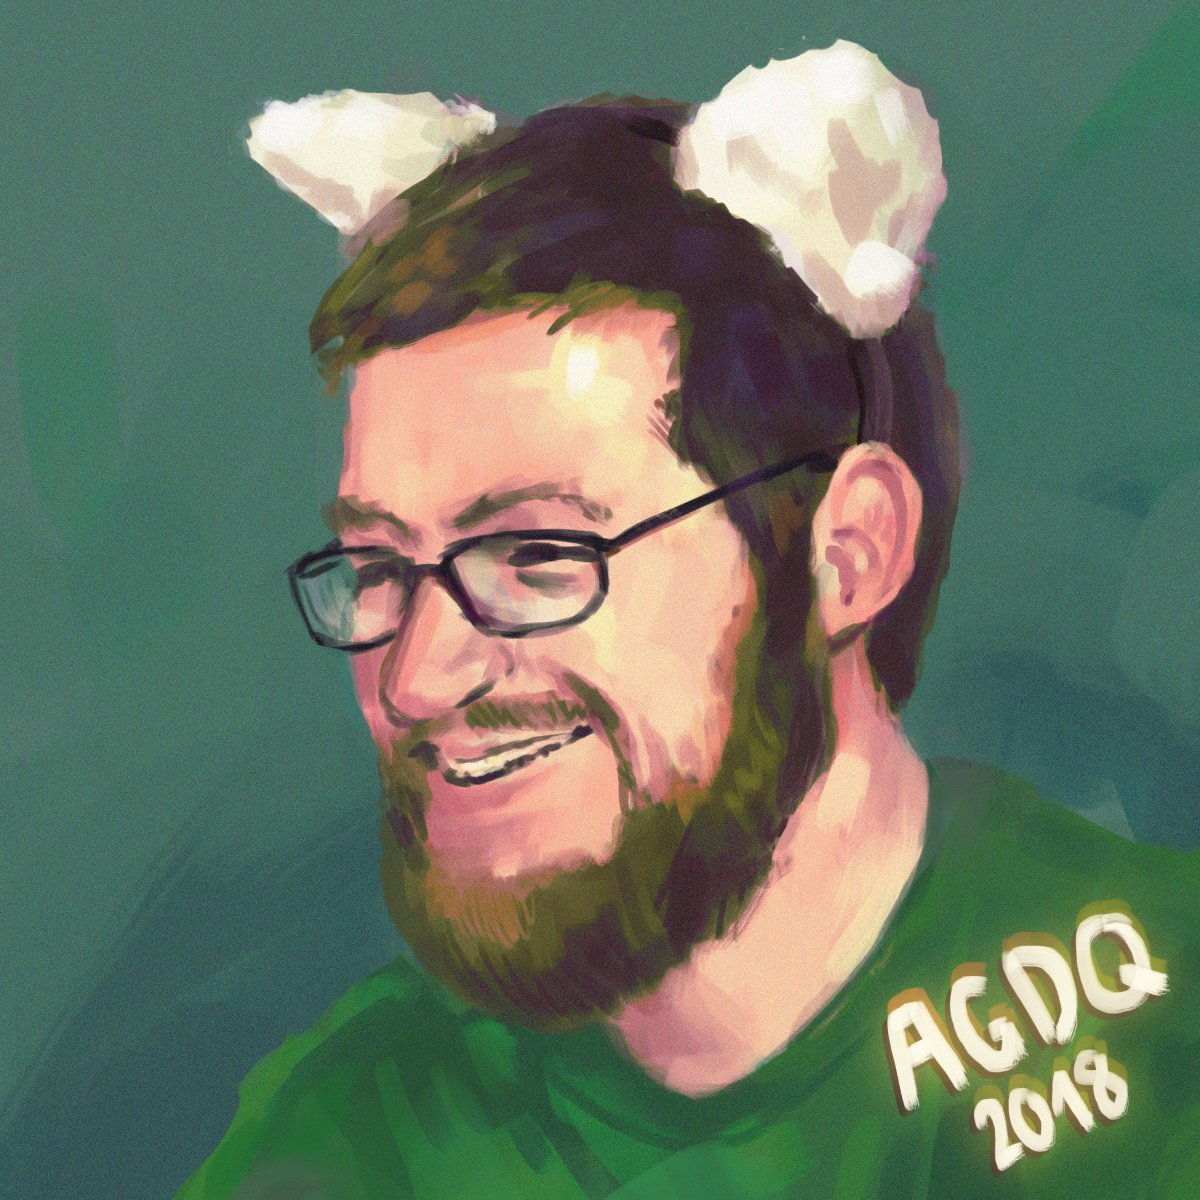 RT @wandmeister: @halfcoordinated your runs are always a heartwarming highlight. Have a good #AGDQ2018!!! https://t.co/ozI8OqqdNp